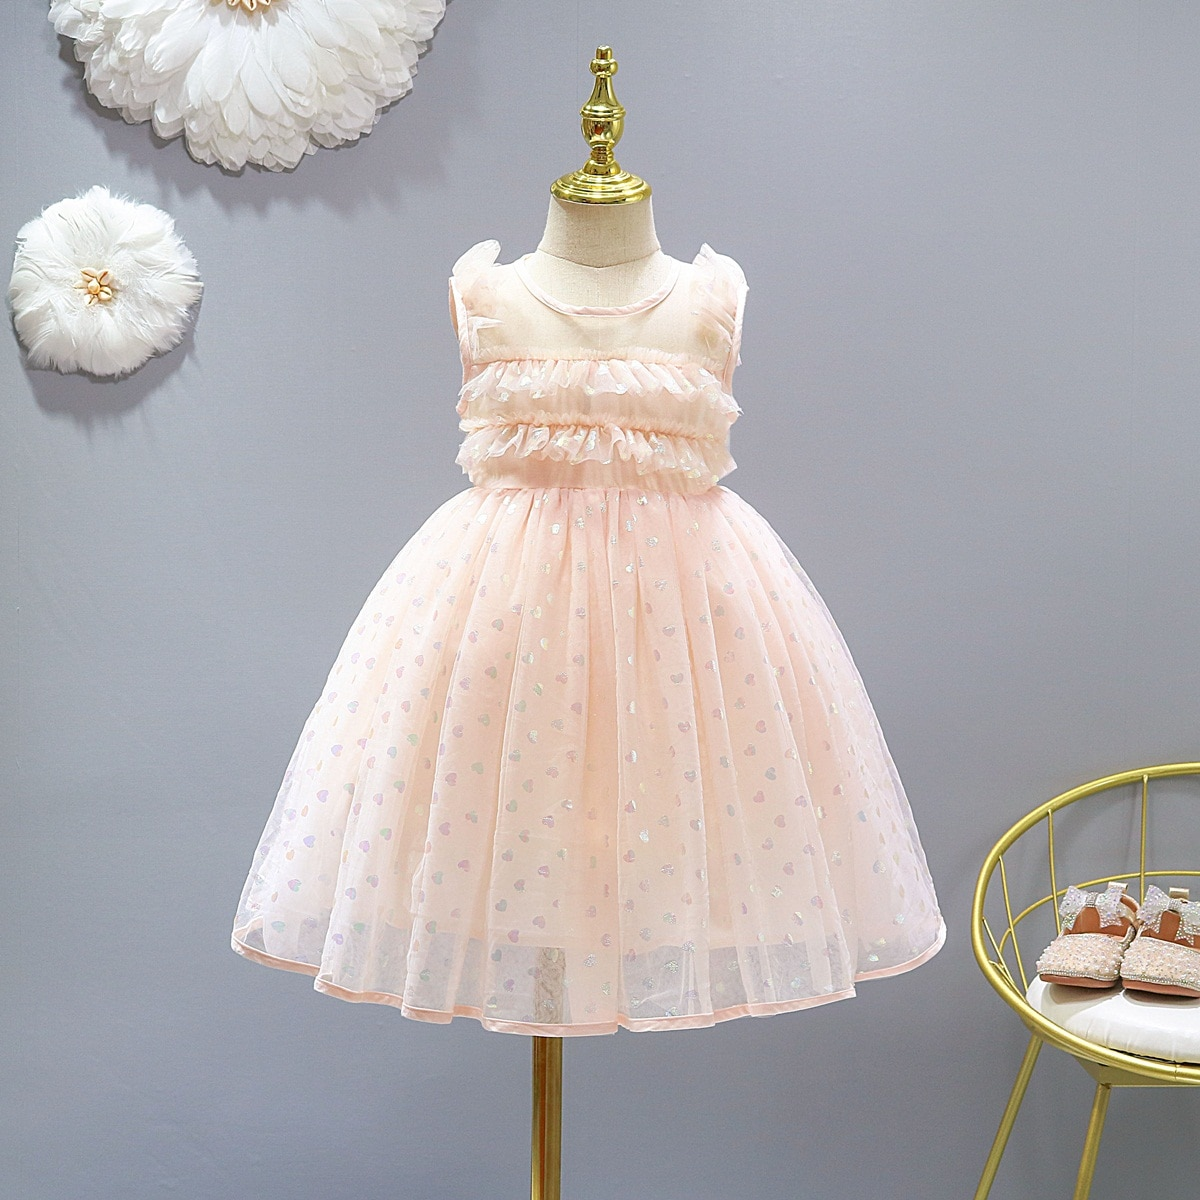 Girls Clothes Kids Dress Princess Costume Cute Dots Print Ruffles Summer 4-13 Years Party Dresses For Girl Children's Clothing